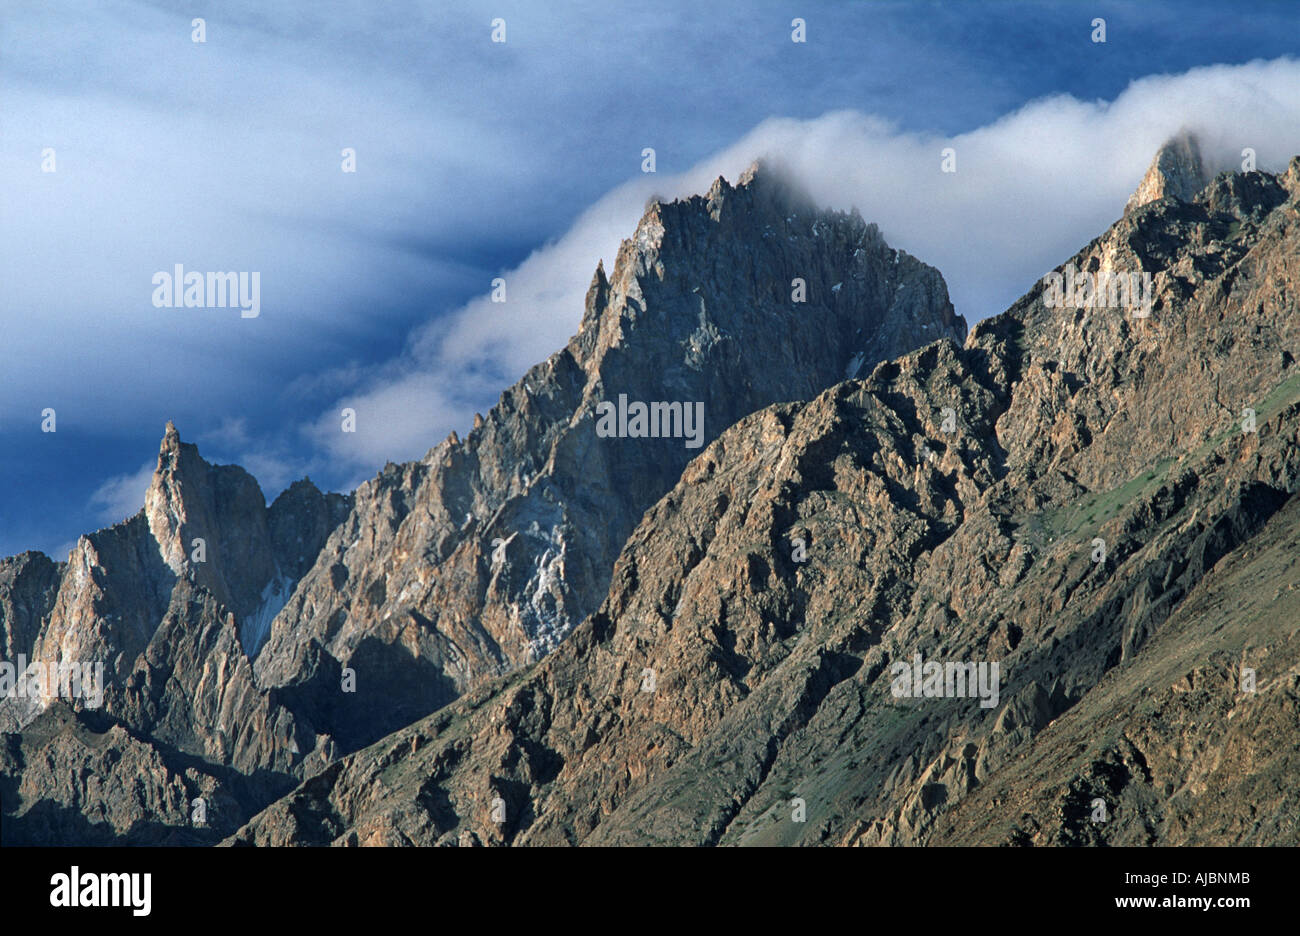 PAKISTAN mountain backdrop viewed from Sust in the northern reaches of the Pakistani end of the Karakoram Highway - Stock Image